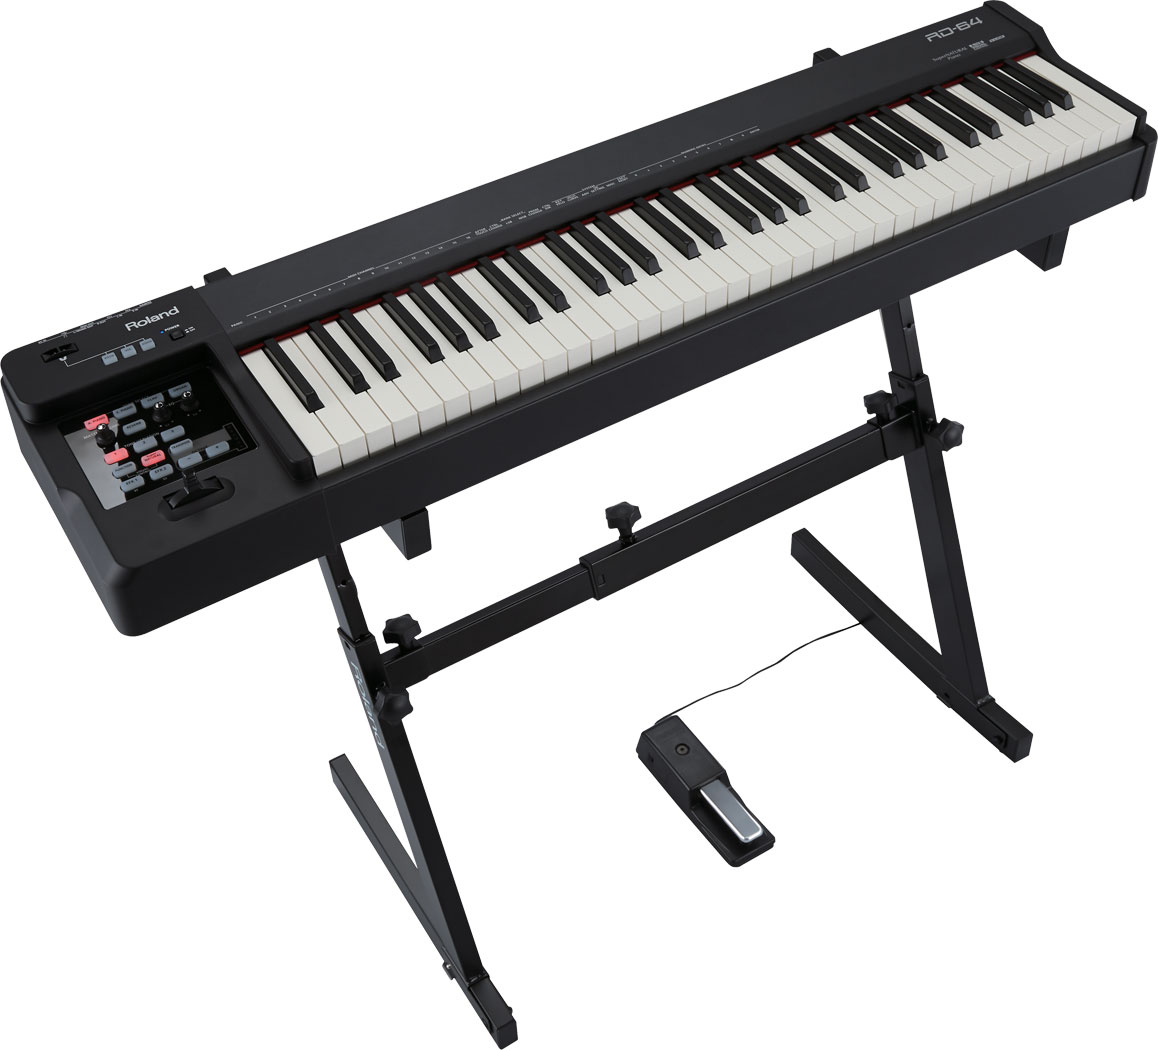 rd 64 angle stand gal - Roland Rd-64 Digital Piano